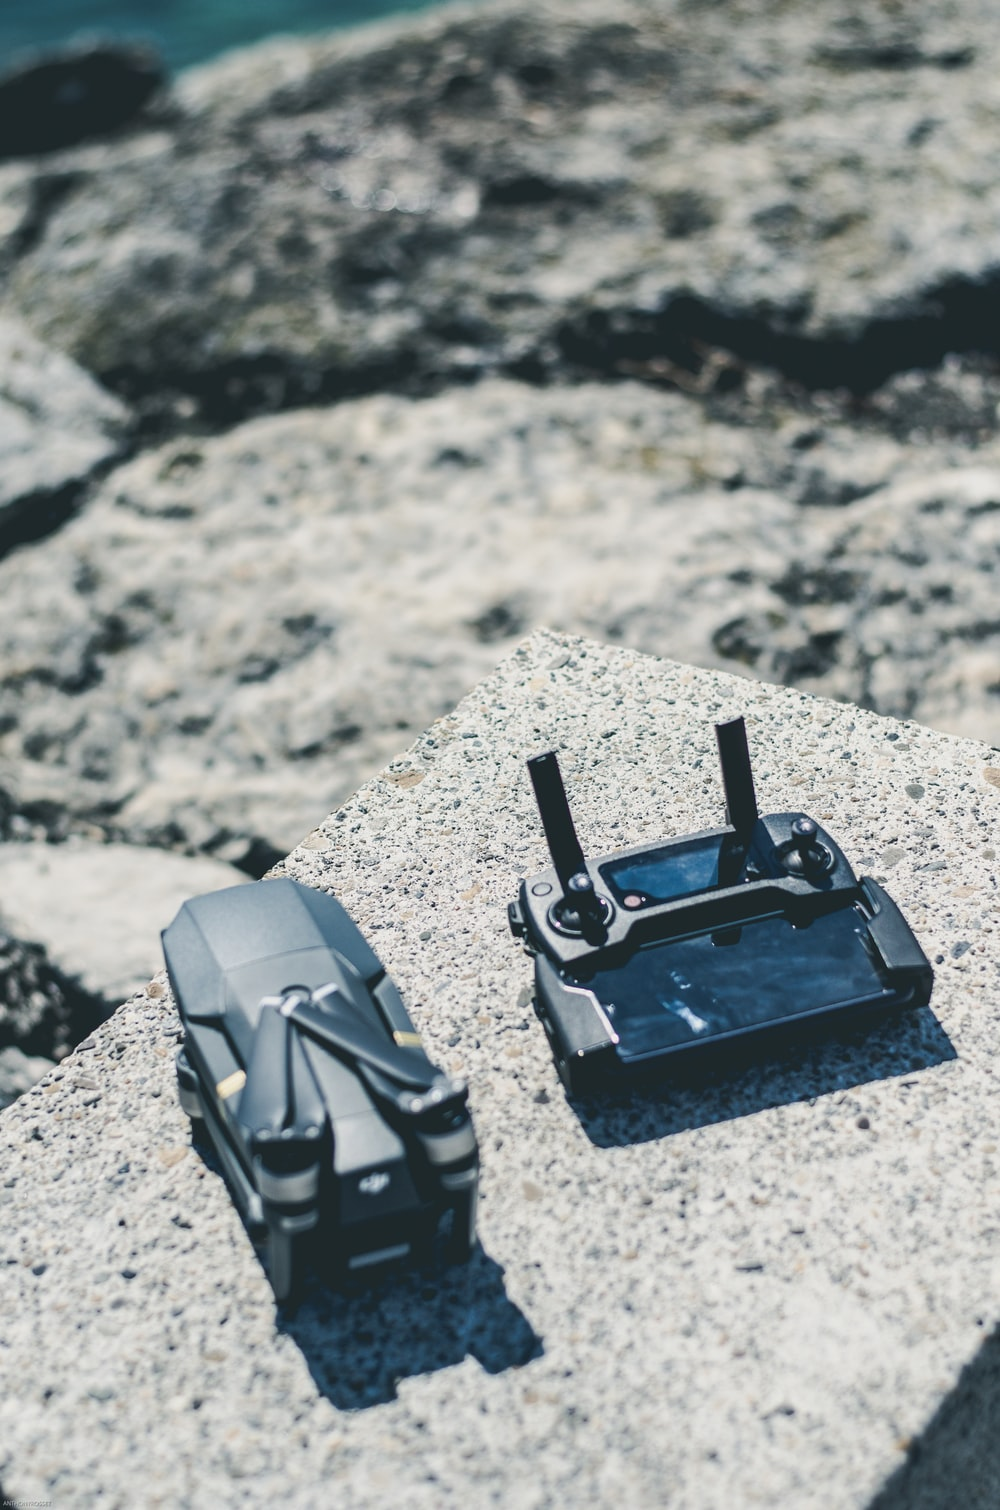 black DJI Mavic drone and controller on platform concrete